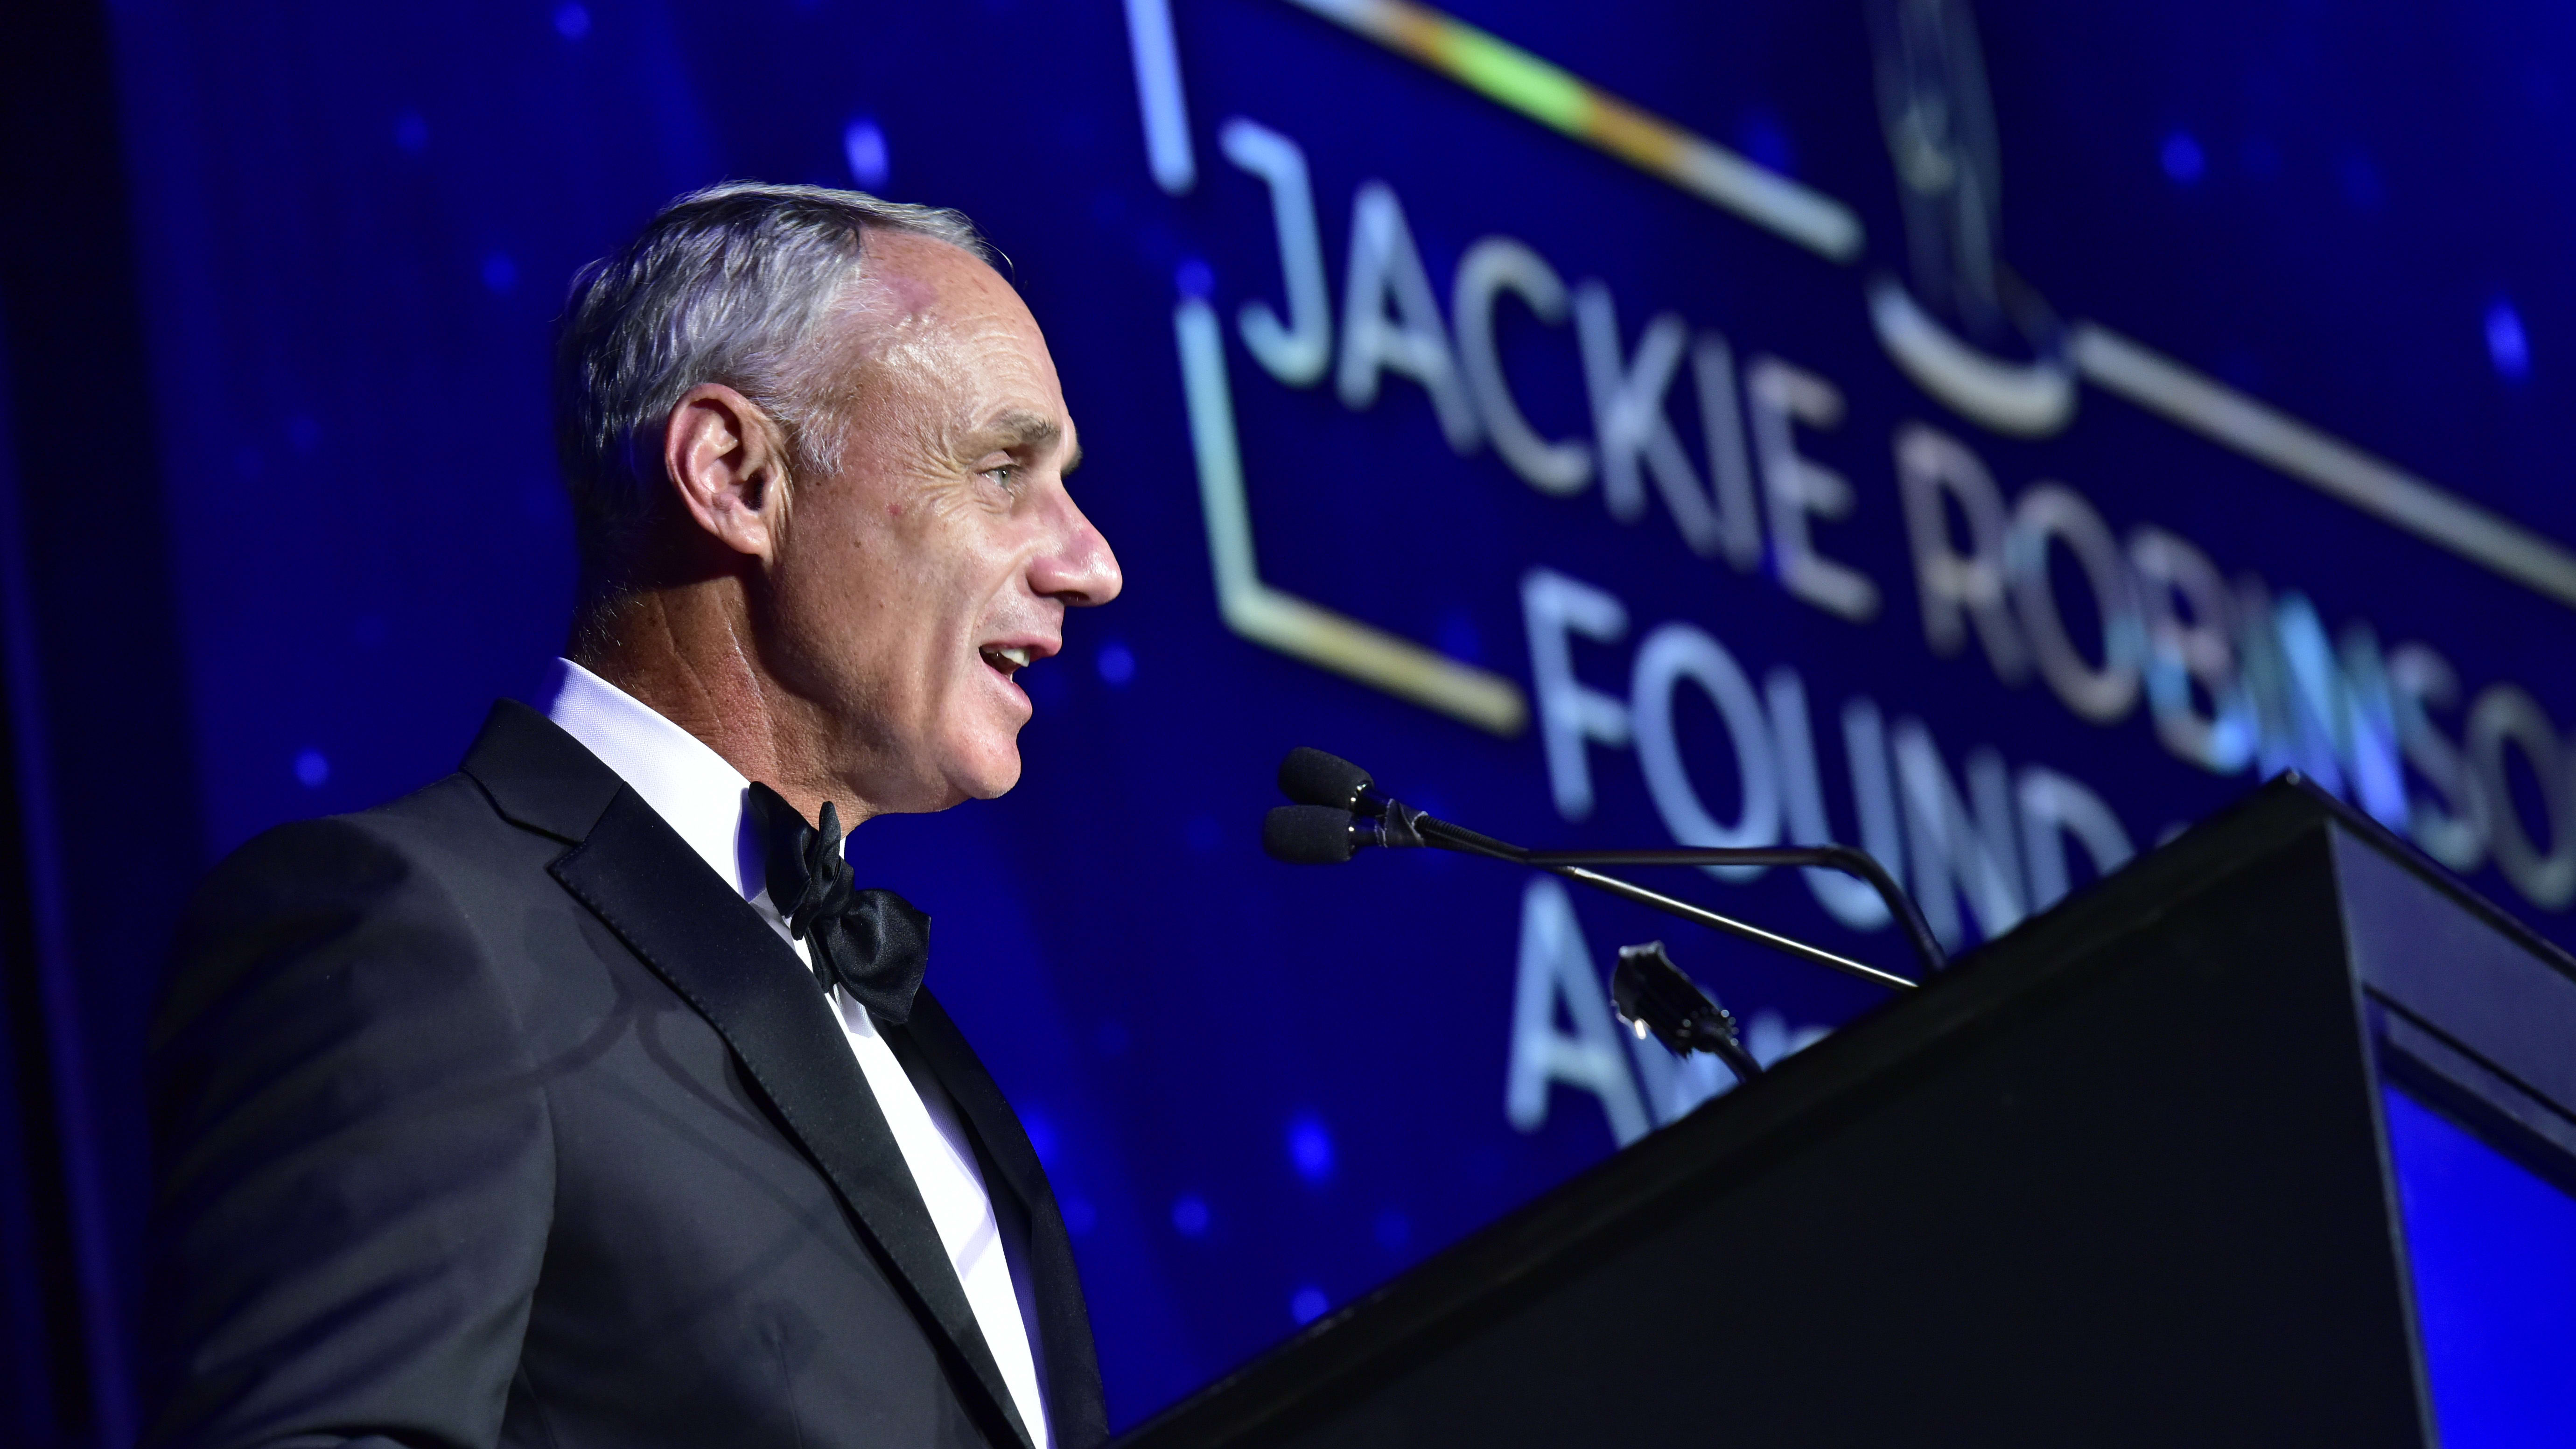 NEW YORK, NY - MARCH 04:  Robert Manfred speaks onstage during the Jackie Robinson Foundation 2019 Annual Awards Dinner on March 4, 2019 in New York City.  (Photo by Eugene Gologursky/Getty Images for Jackie Robinson Foundation)